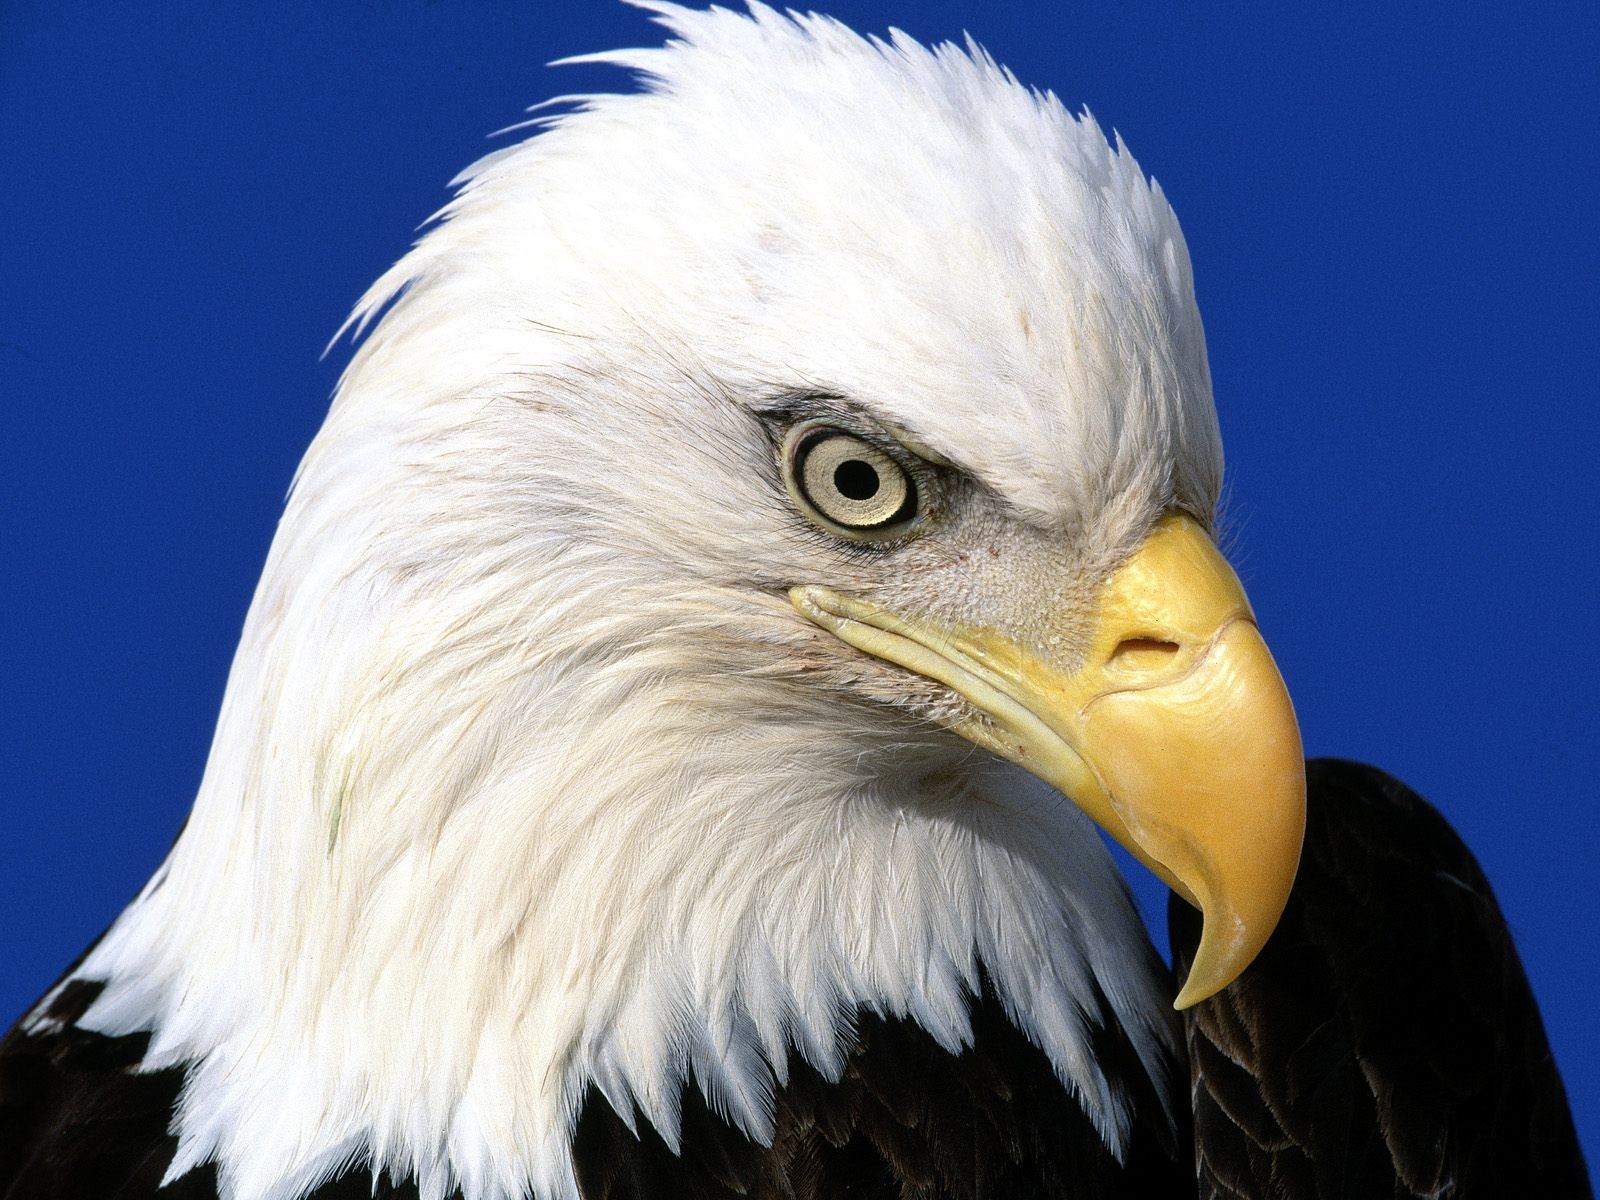 Noble Lead Bald Eagle Wallpapers HD Wallpapers 1600x1200